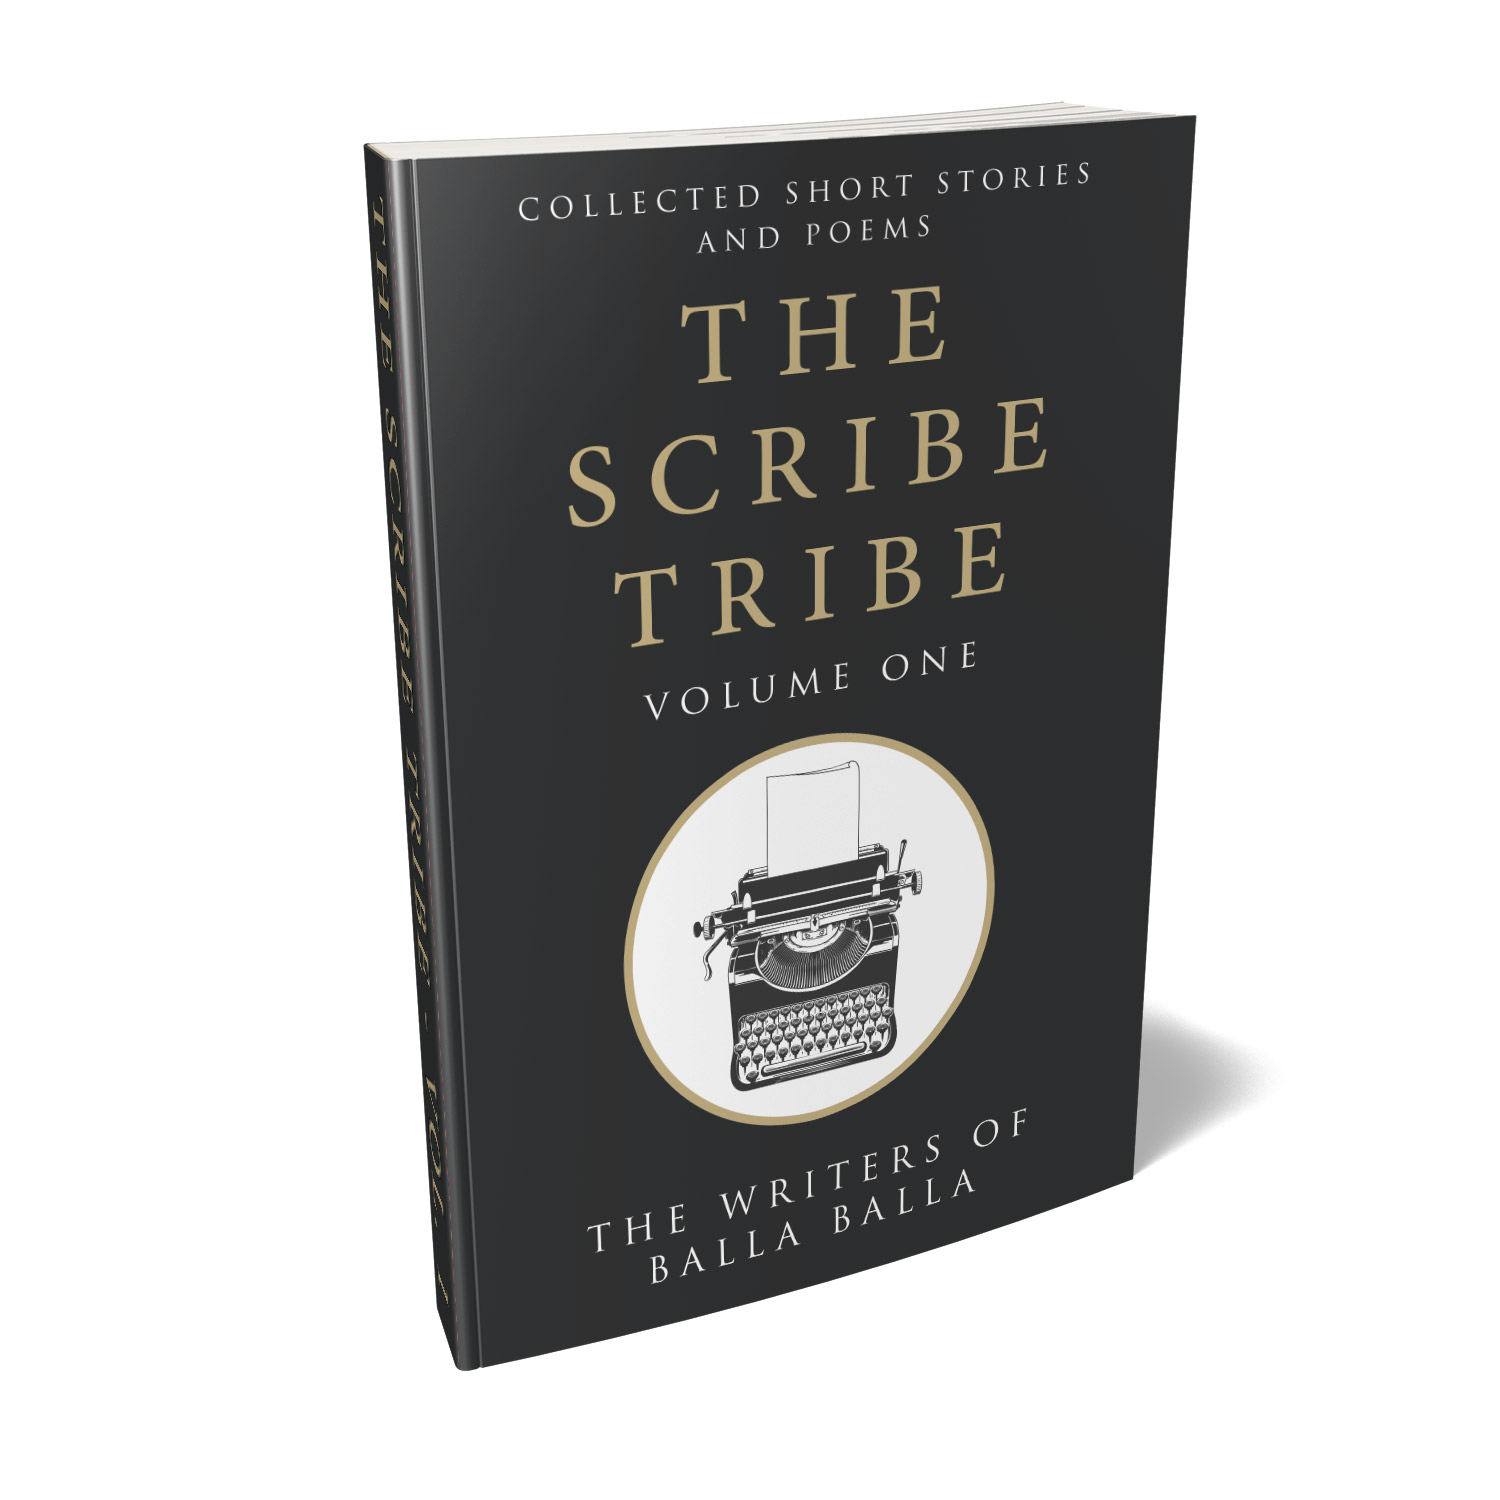 'The Scribe Tribe' is a compendium of short stories by an Australian Writing Group. The cover design and interior manuscript formatting are by Mark Thomas. Learn what Mark could do for your book by visiting coverness.com.